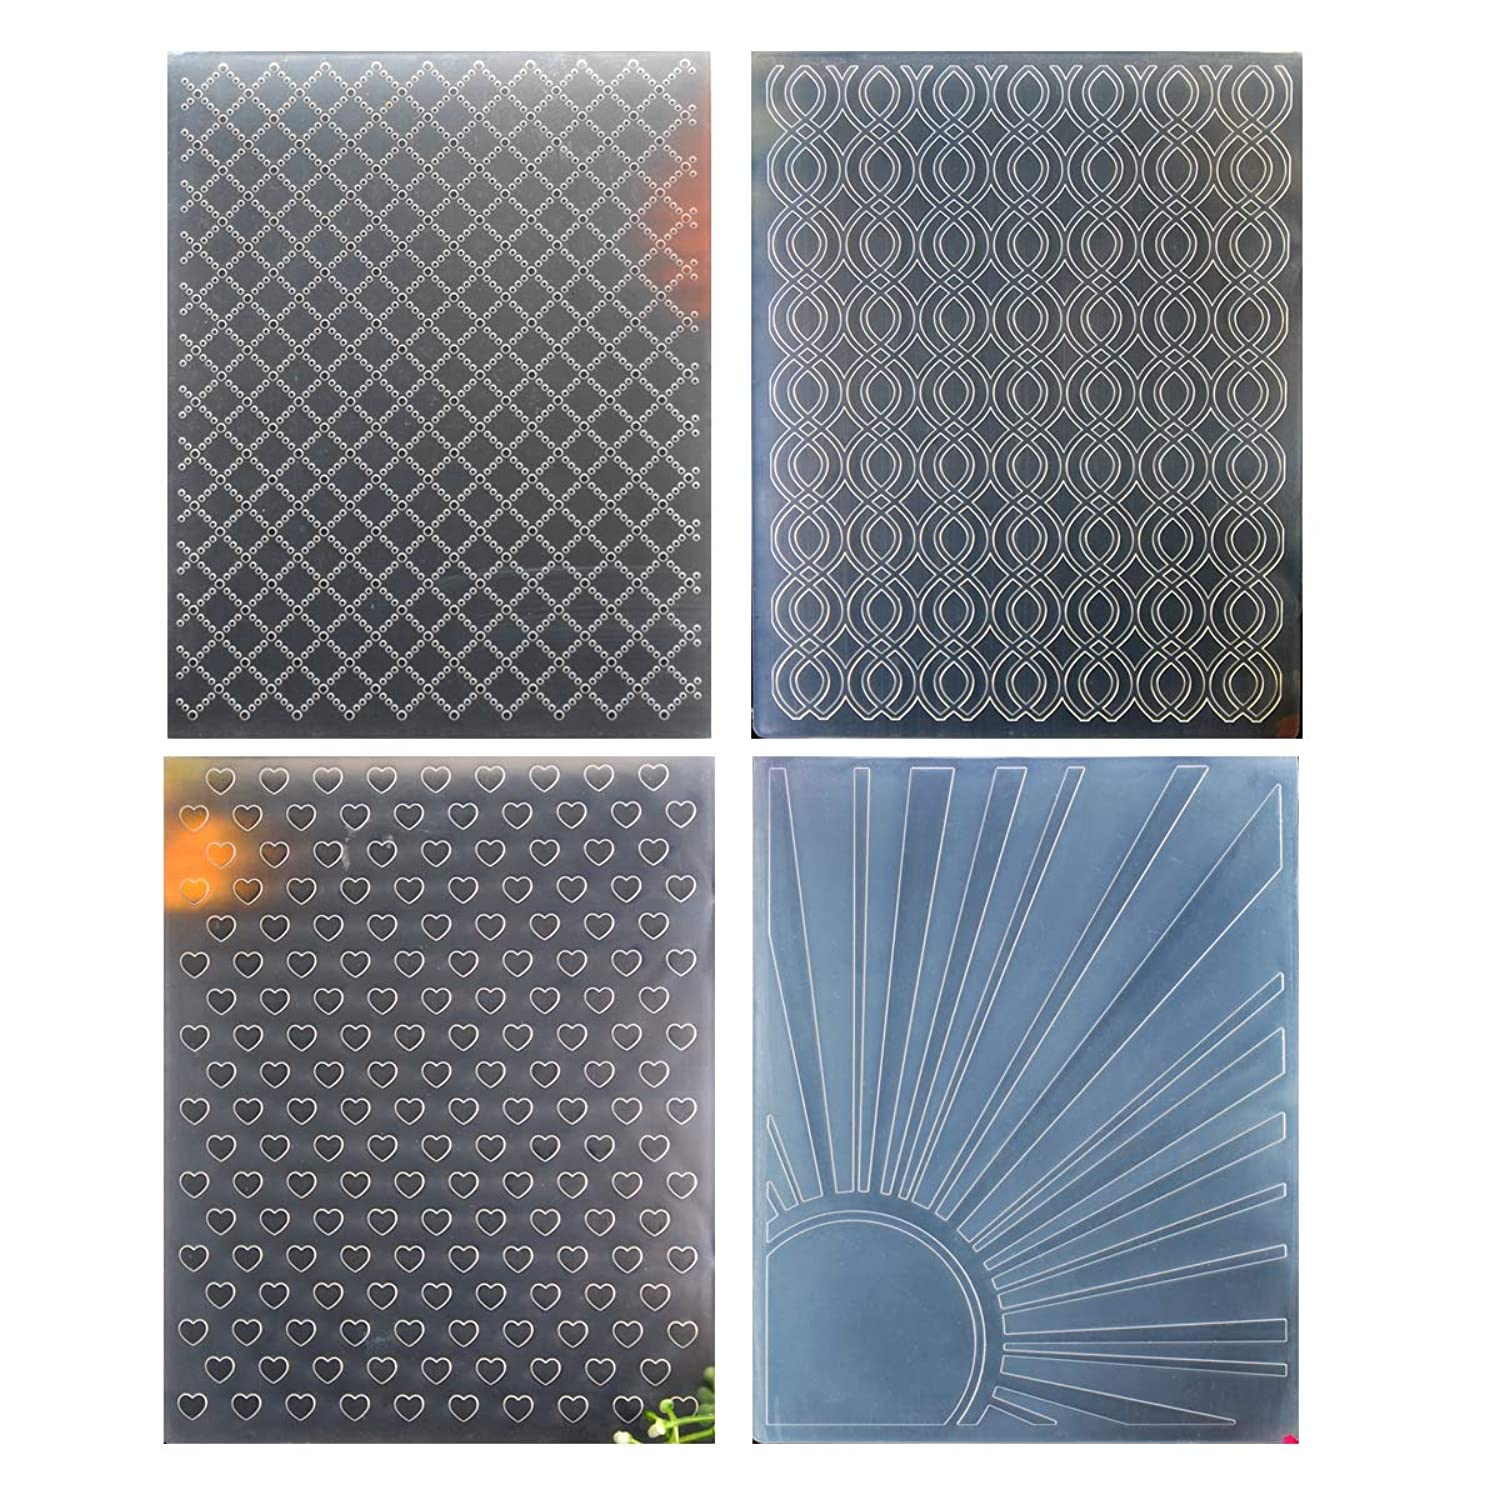 Kwan Crafts 4 pcs Different Style Lattice Twist Heart Sunshine Plastic Embossing Folders for Card Making Scrapbooking and Other Paper Crafts, 12.1x15.3cm